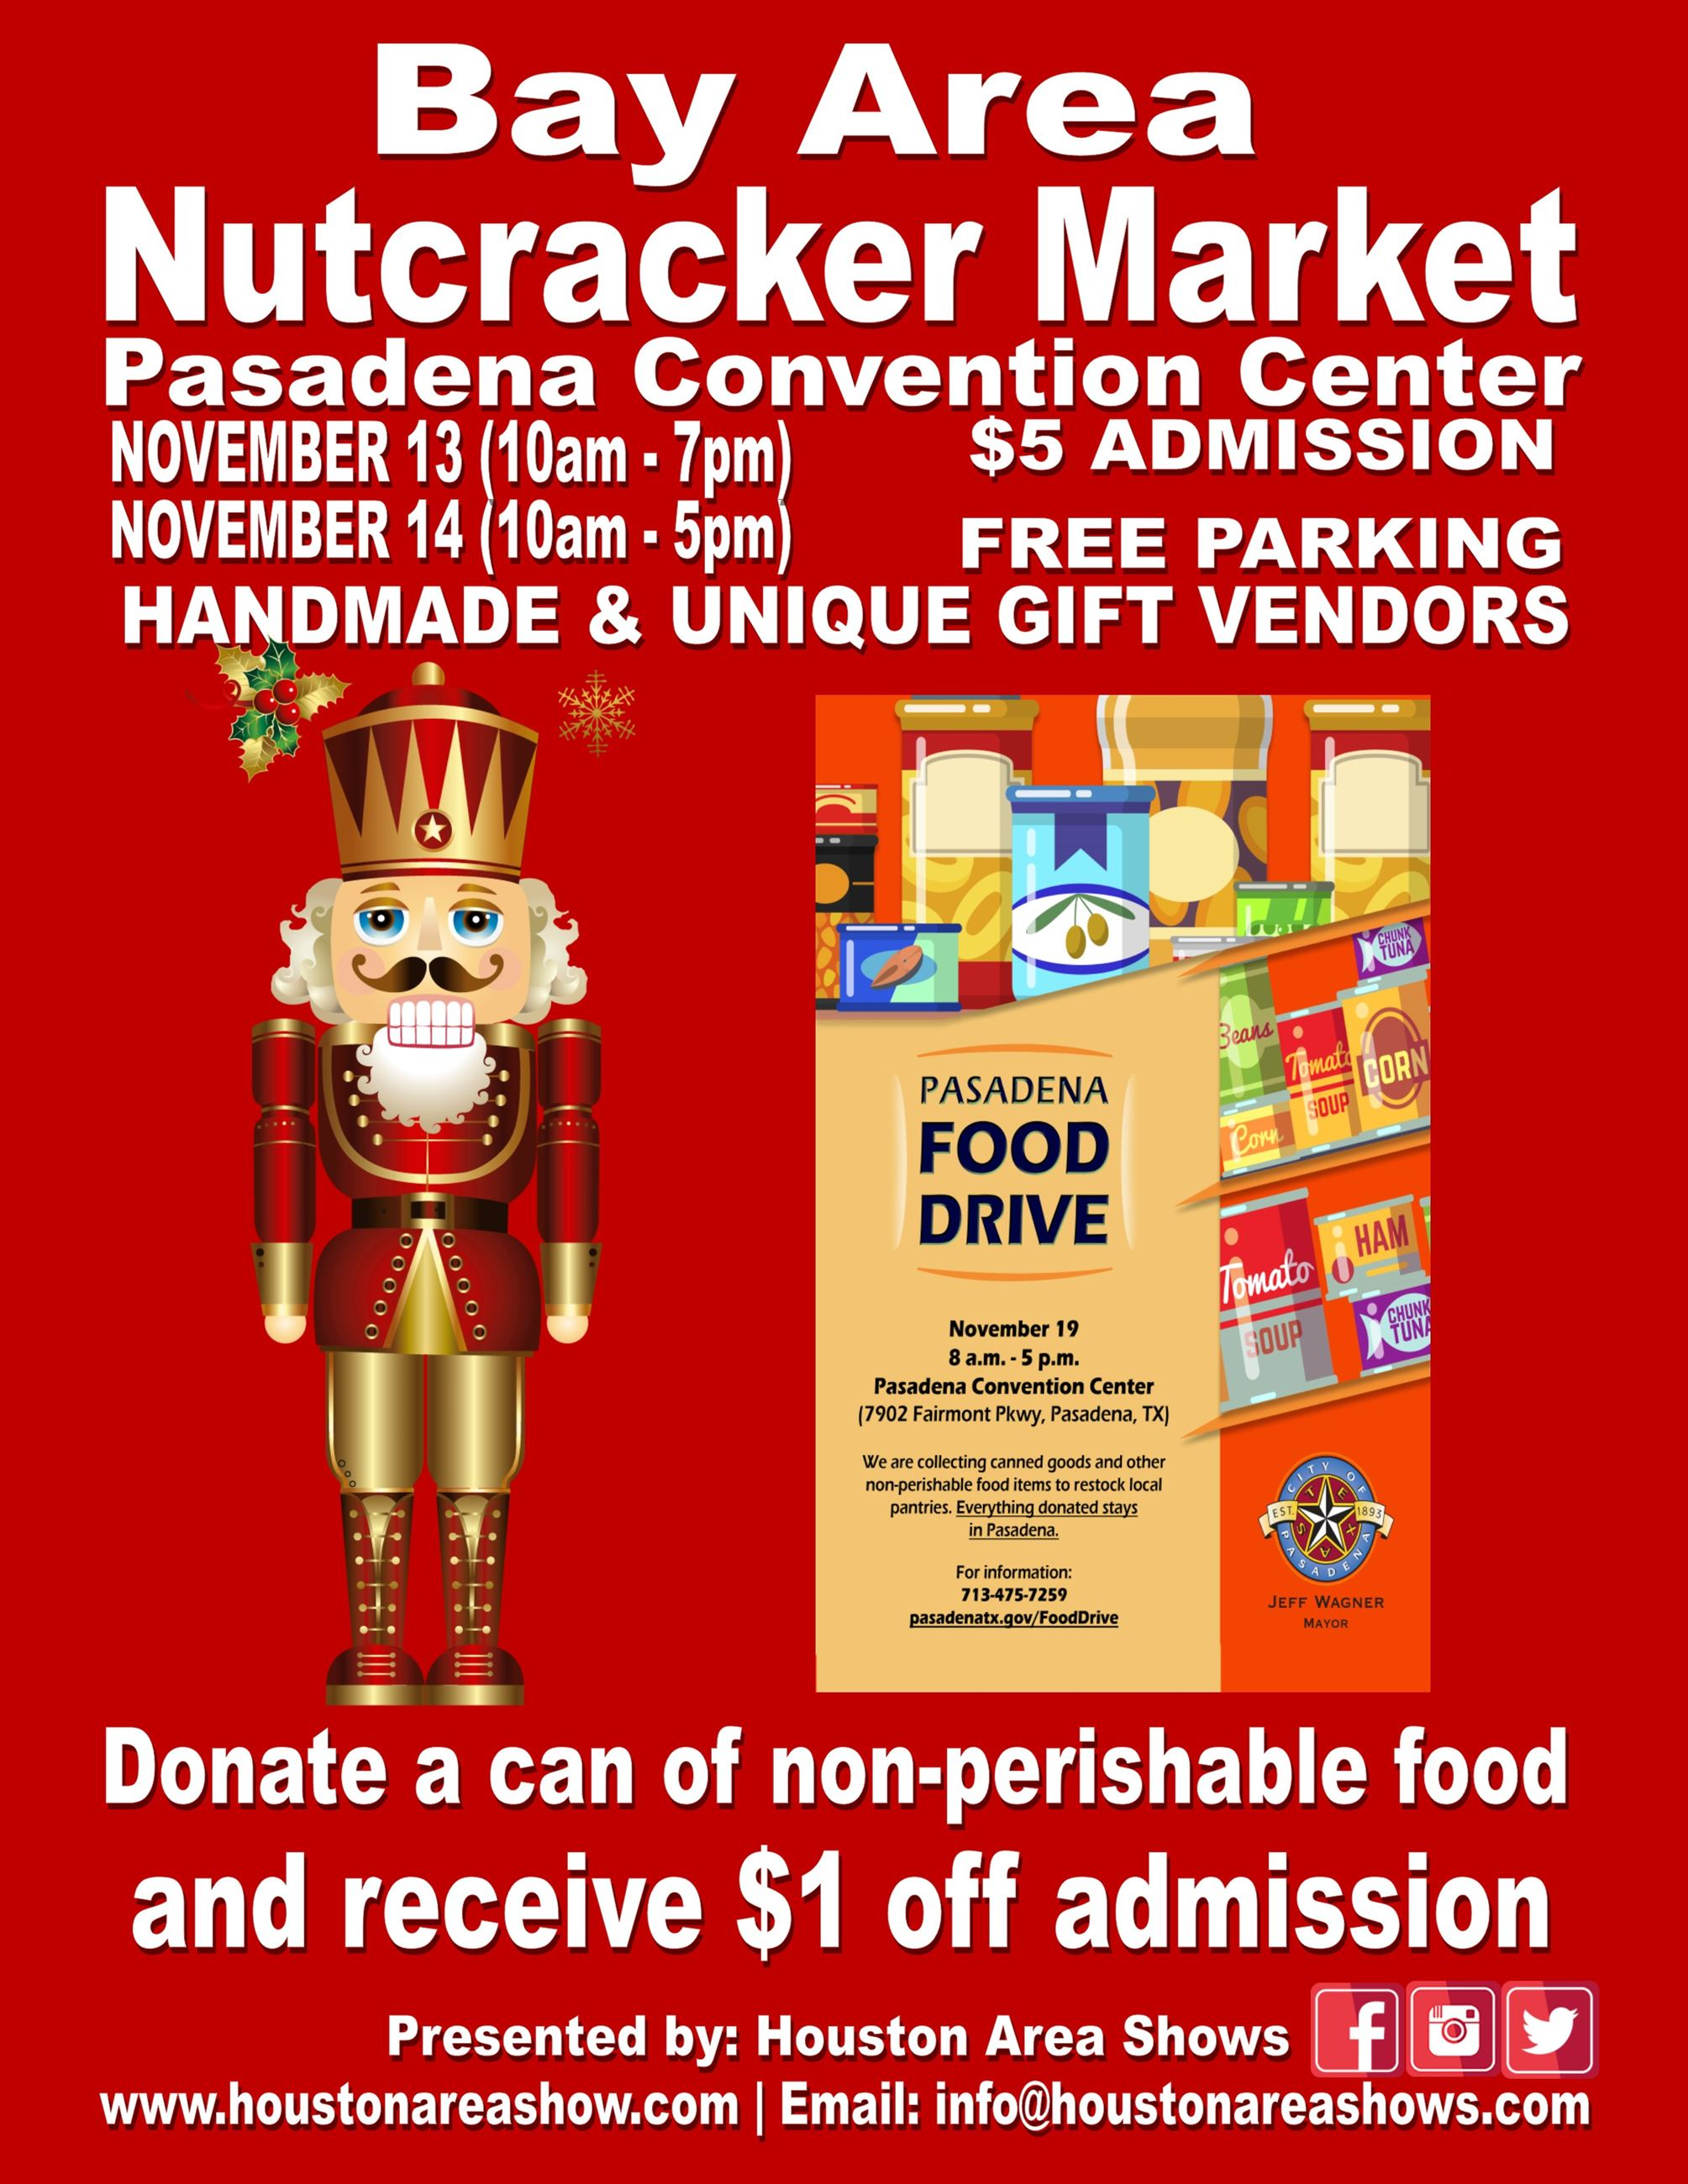 2020 Bay Area Nutcracker Market - holiday market in Pasadena